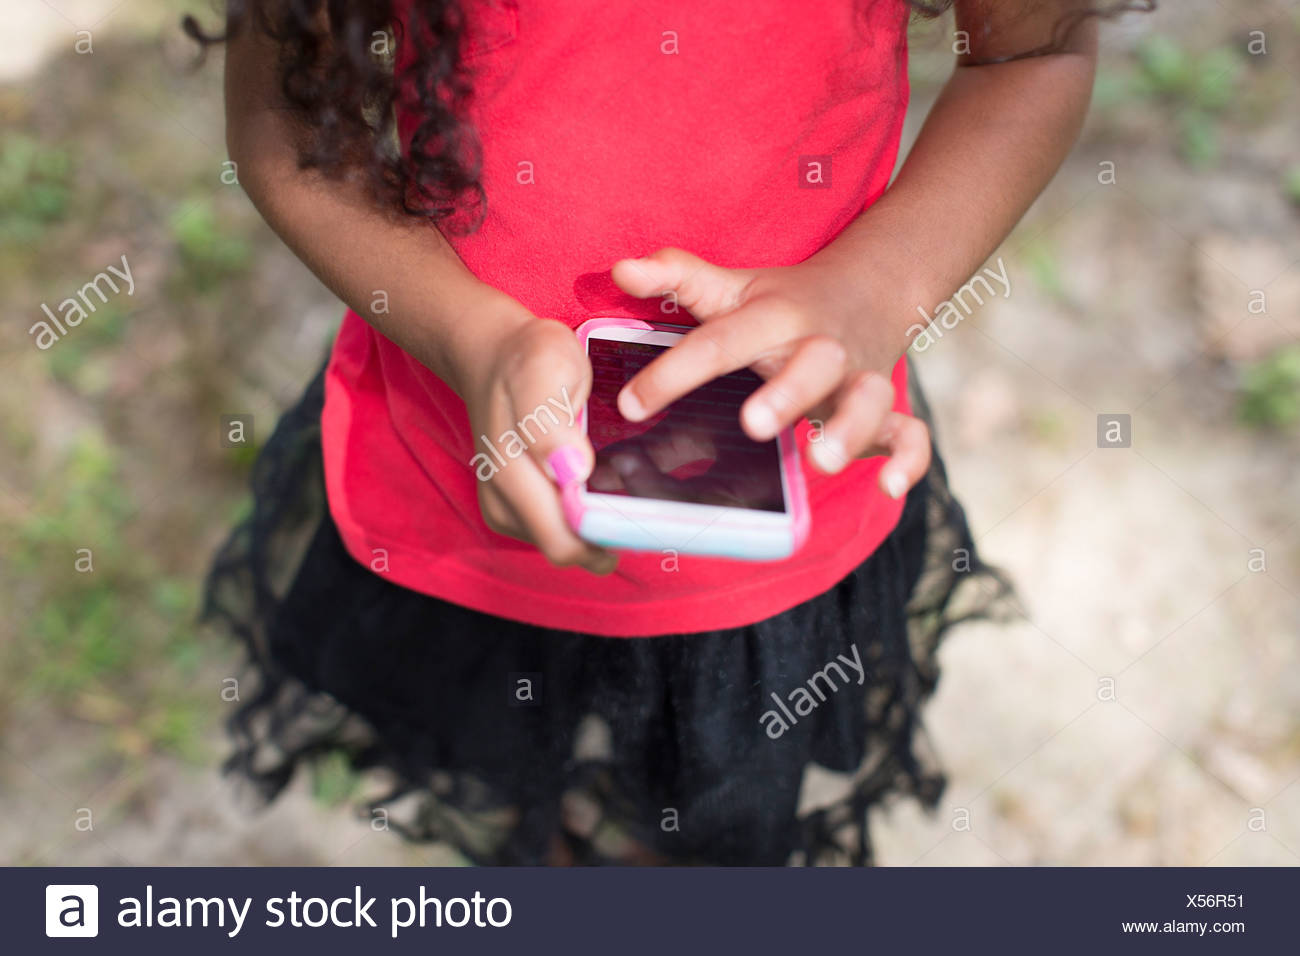 Young girl in park playing hand held video game - Stock Image